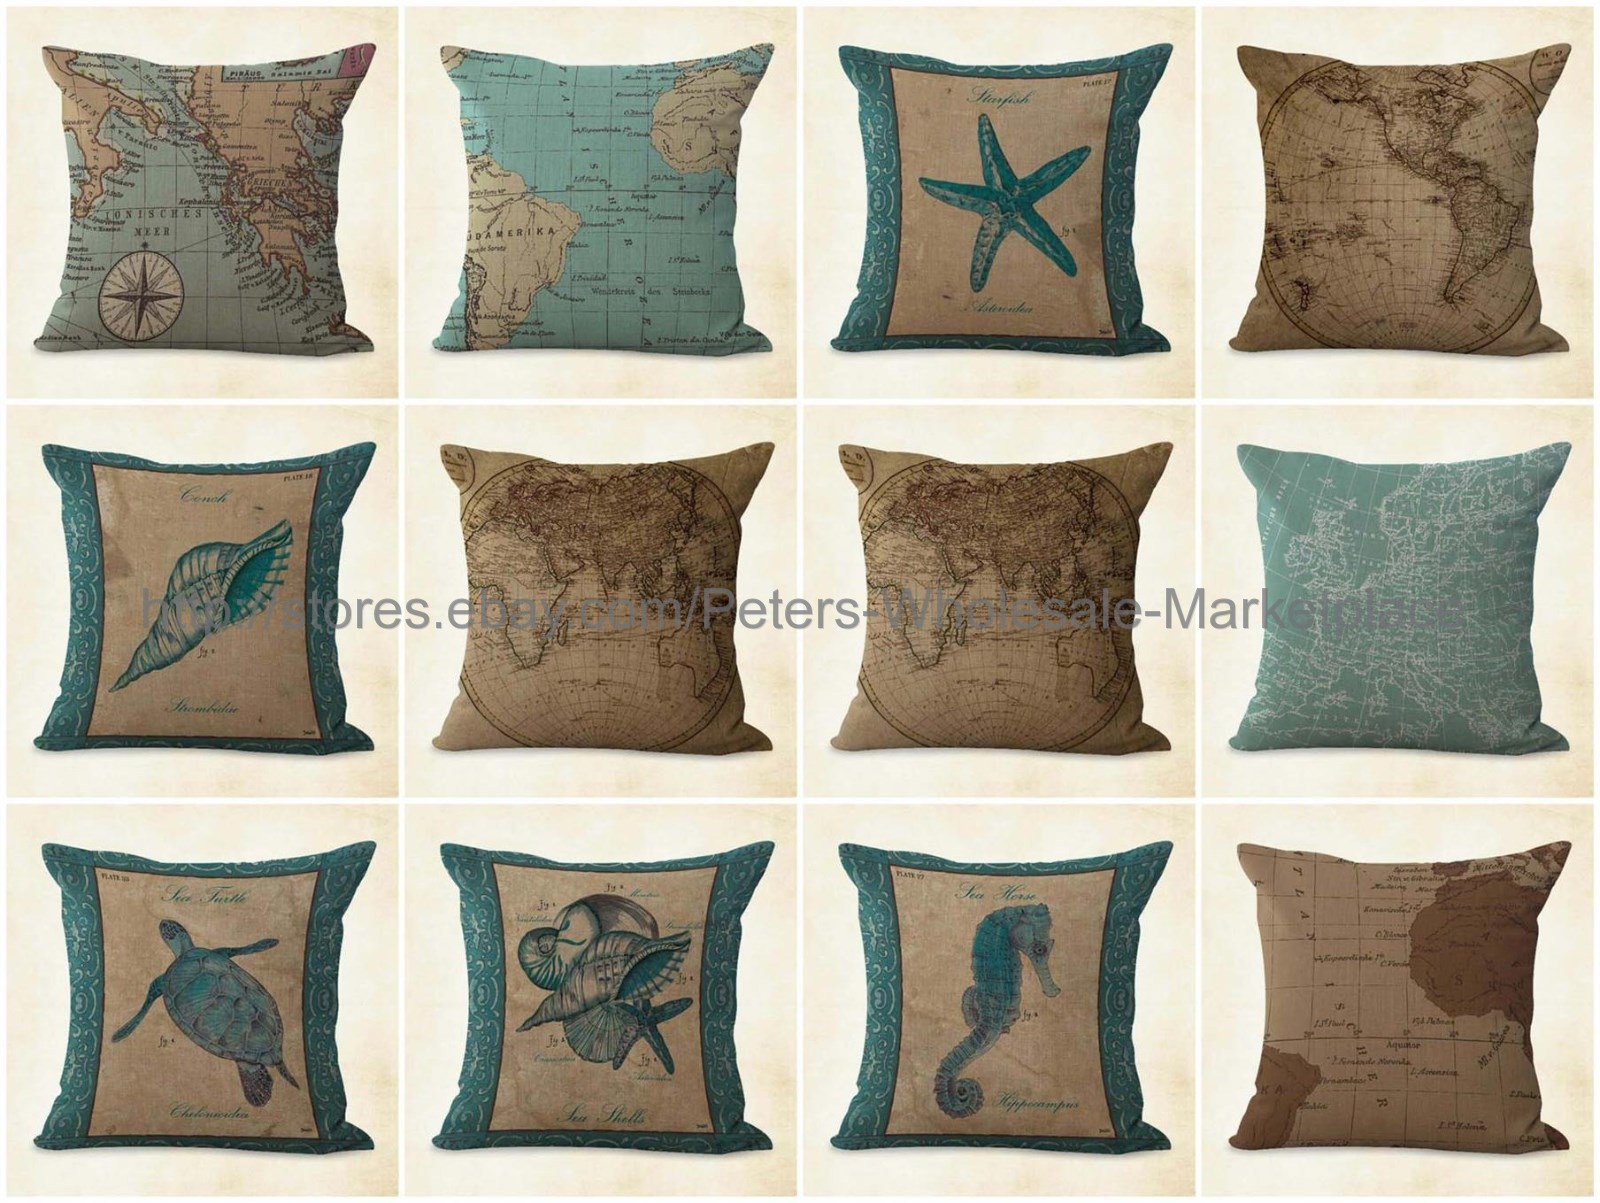 Nautical Sofa Throws Details About Us Seller 10pcs Cushion Covers Ocean Nautical Throw Pillow Case For Sofa